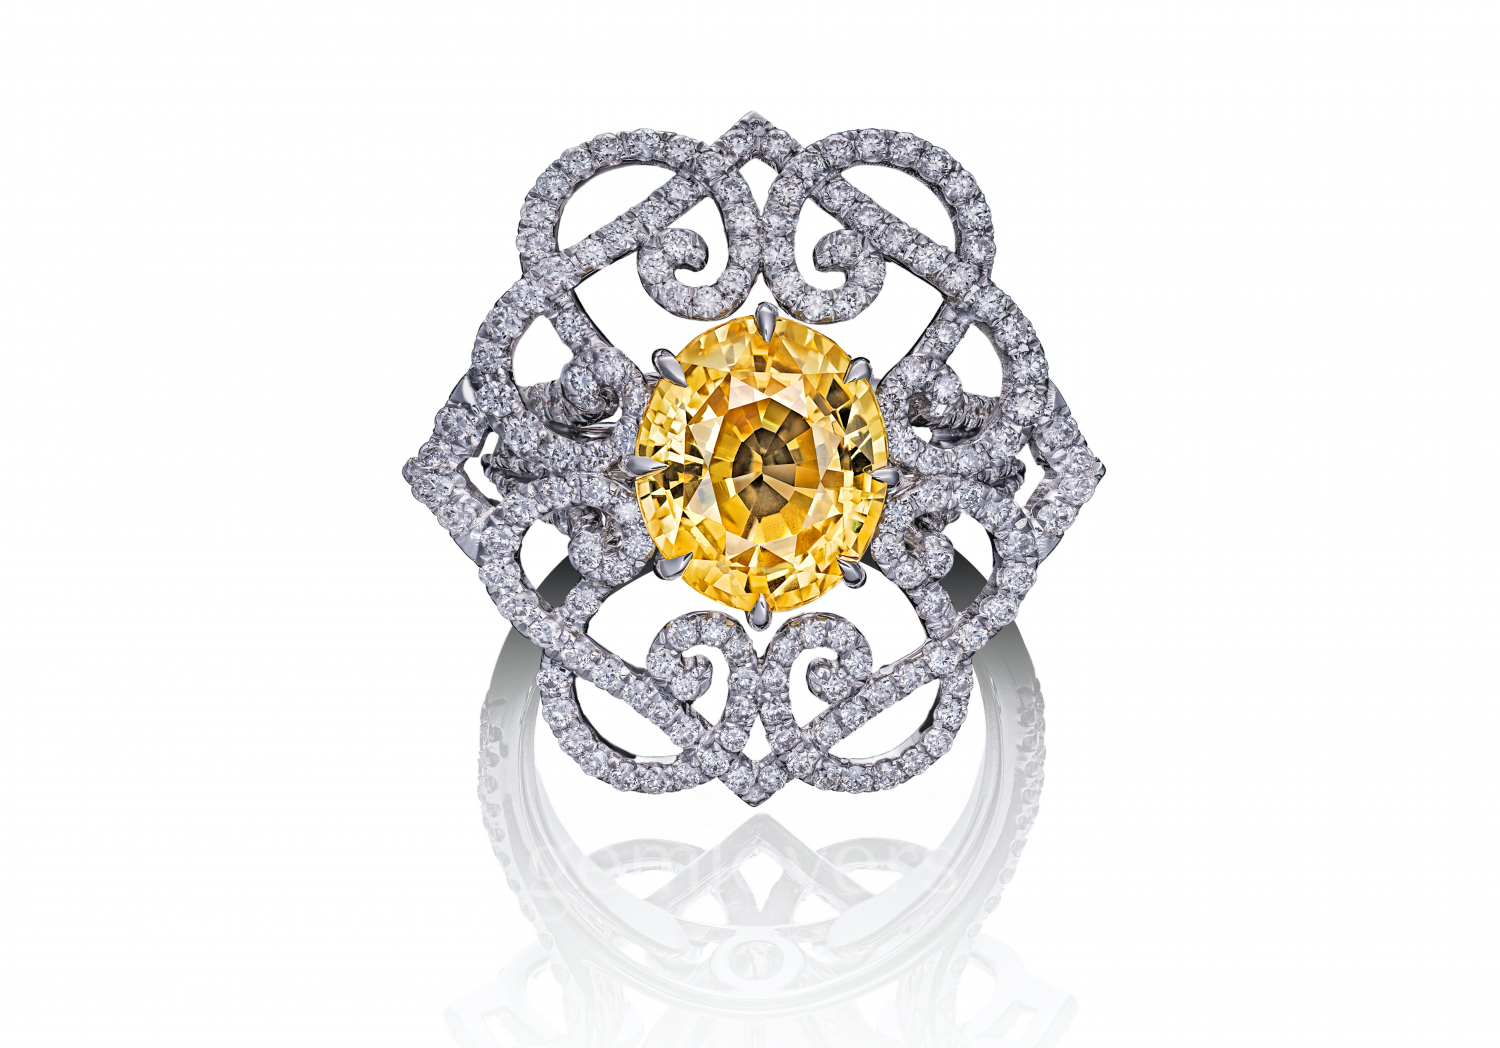 Ring with diamonds and yellow sapphire